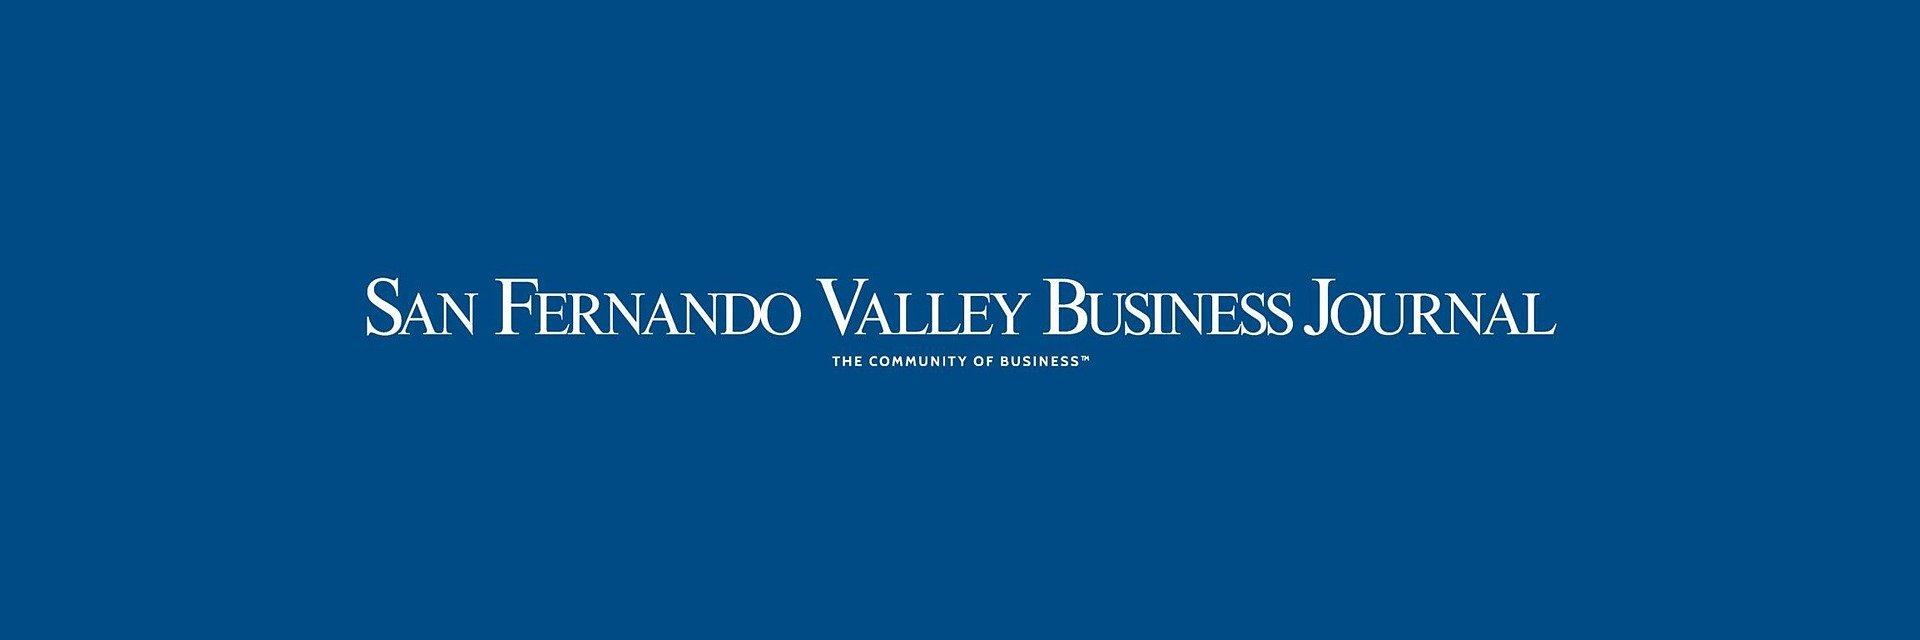 Glendale Video Firm Partners Up